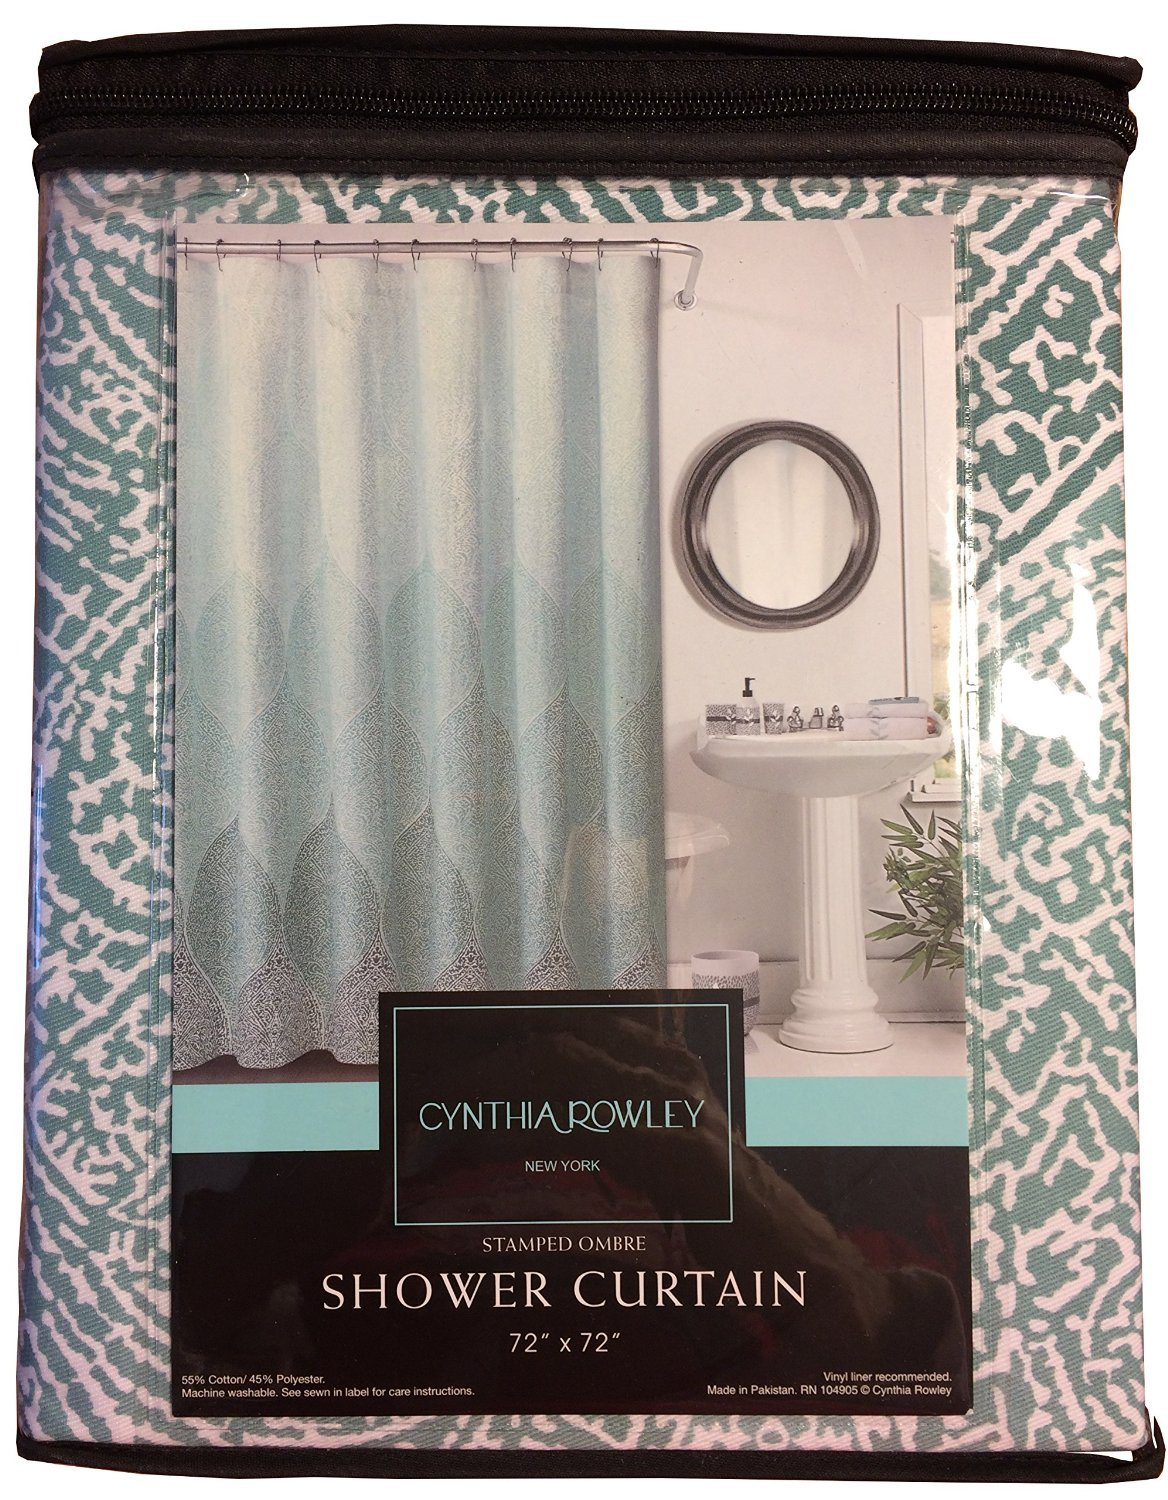 Amazoncom Cynthia Rowley Fabric Shower Curtain Stamped Ombre - Brown and turquoise shower curtain